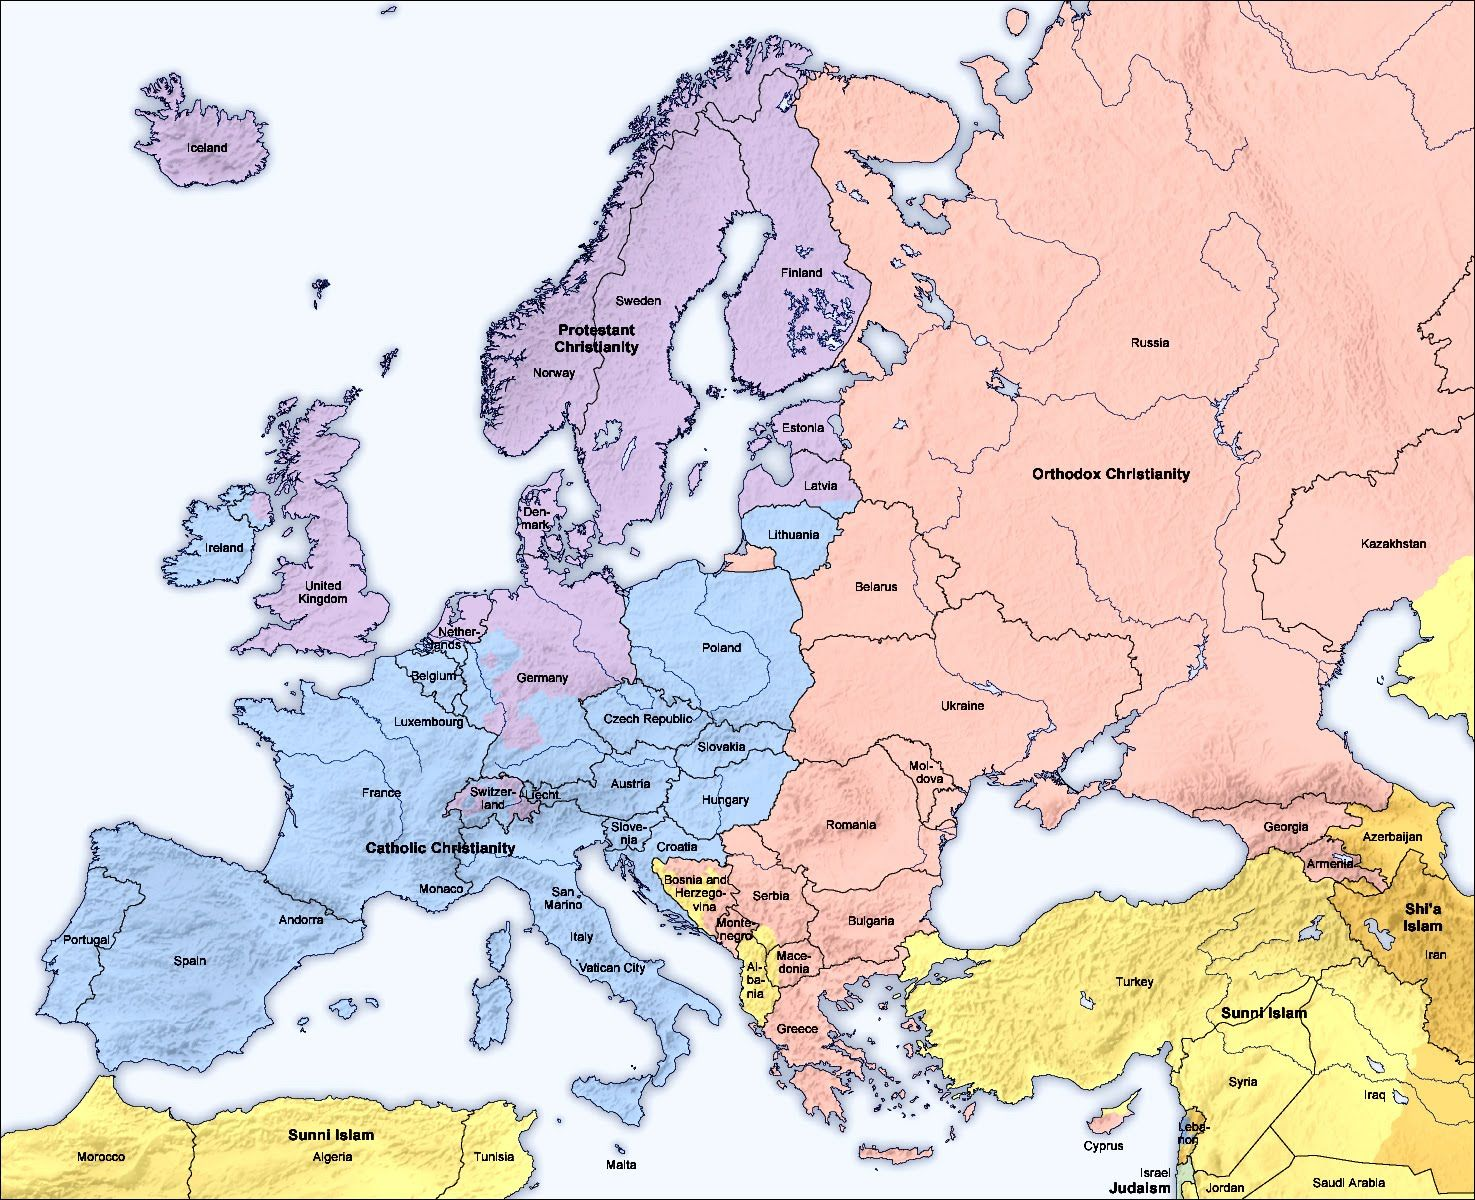 Religions Map Of Europe Along With Some Parts Of Asia And North - Religion map of the world 2013